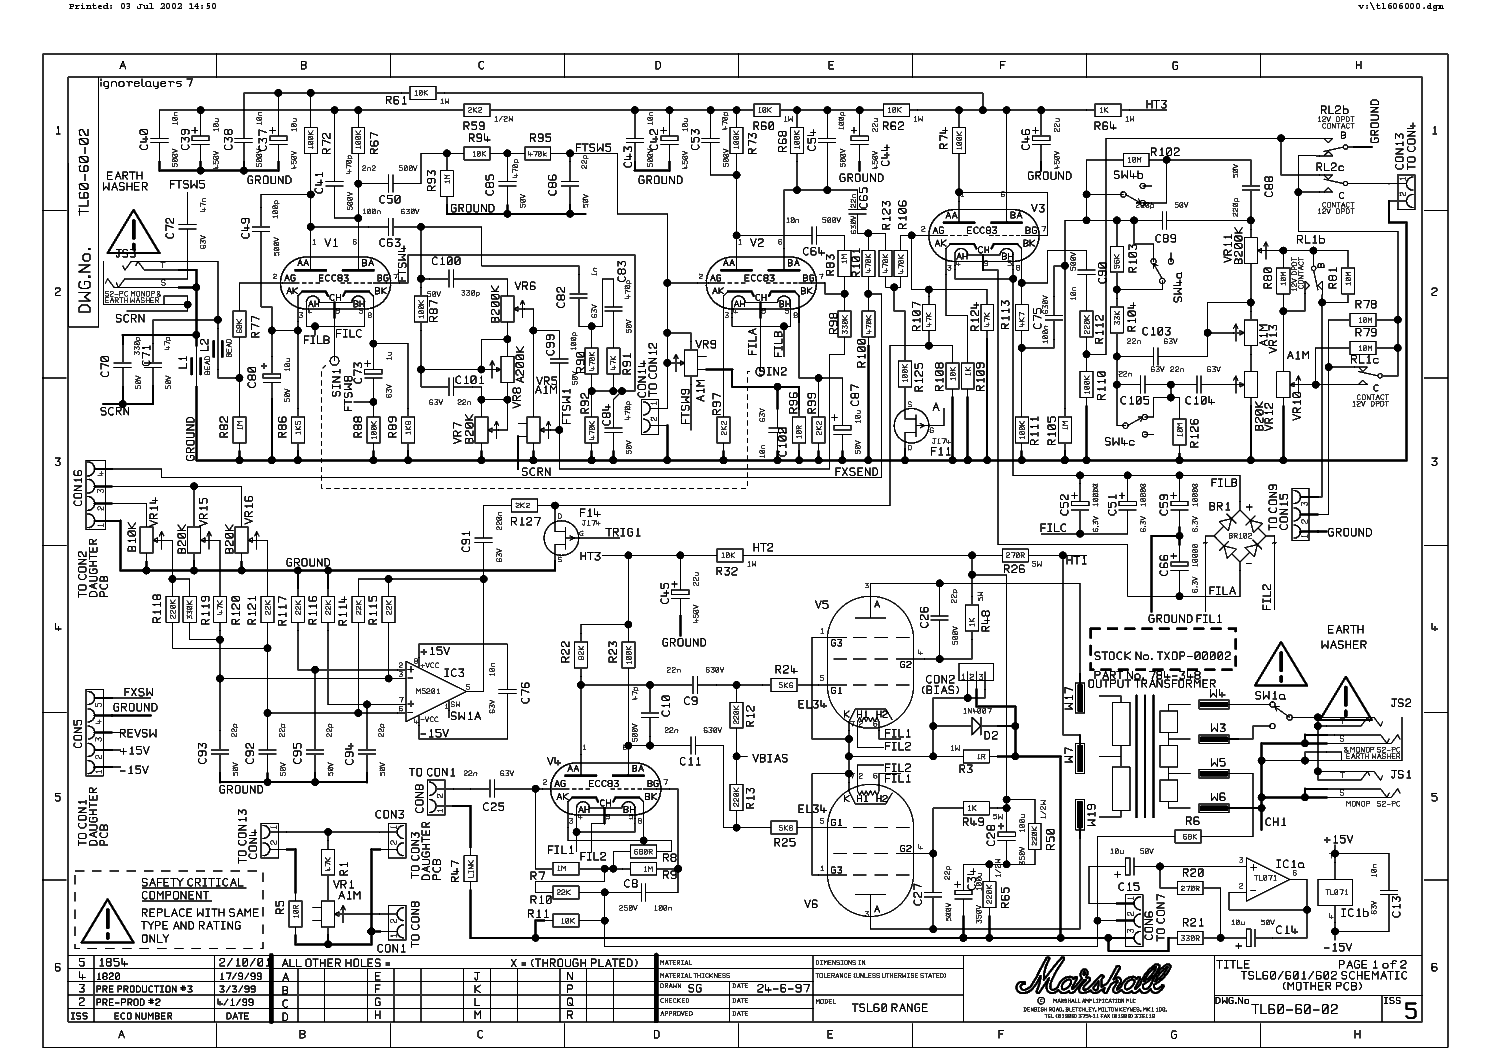 Marshall jcm 2000 dsl 50 schematic design meaning soupum.